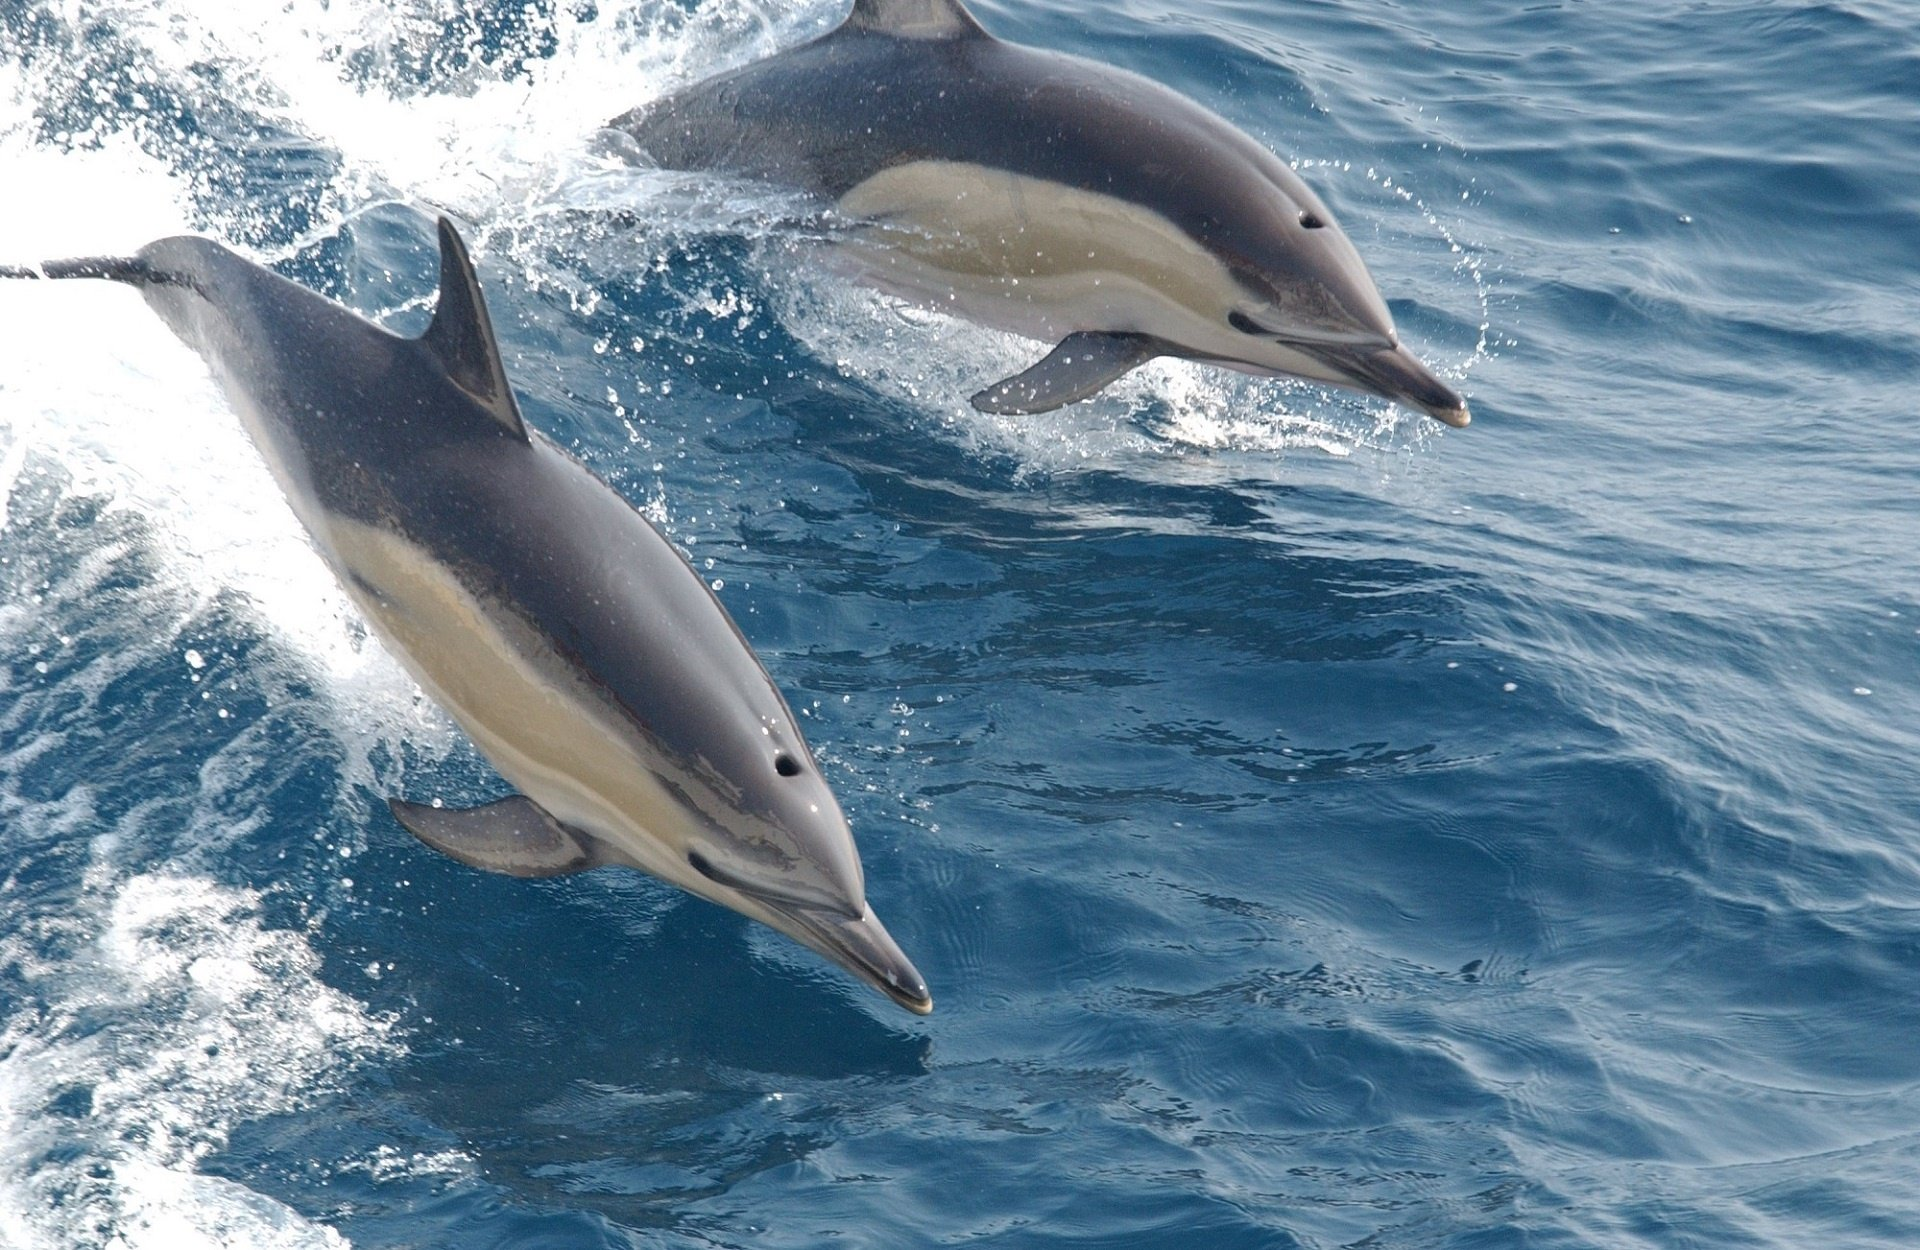 Dolphin Watching in England 2020 - Best Time